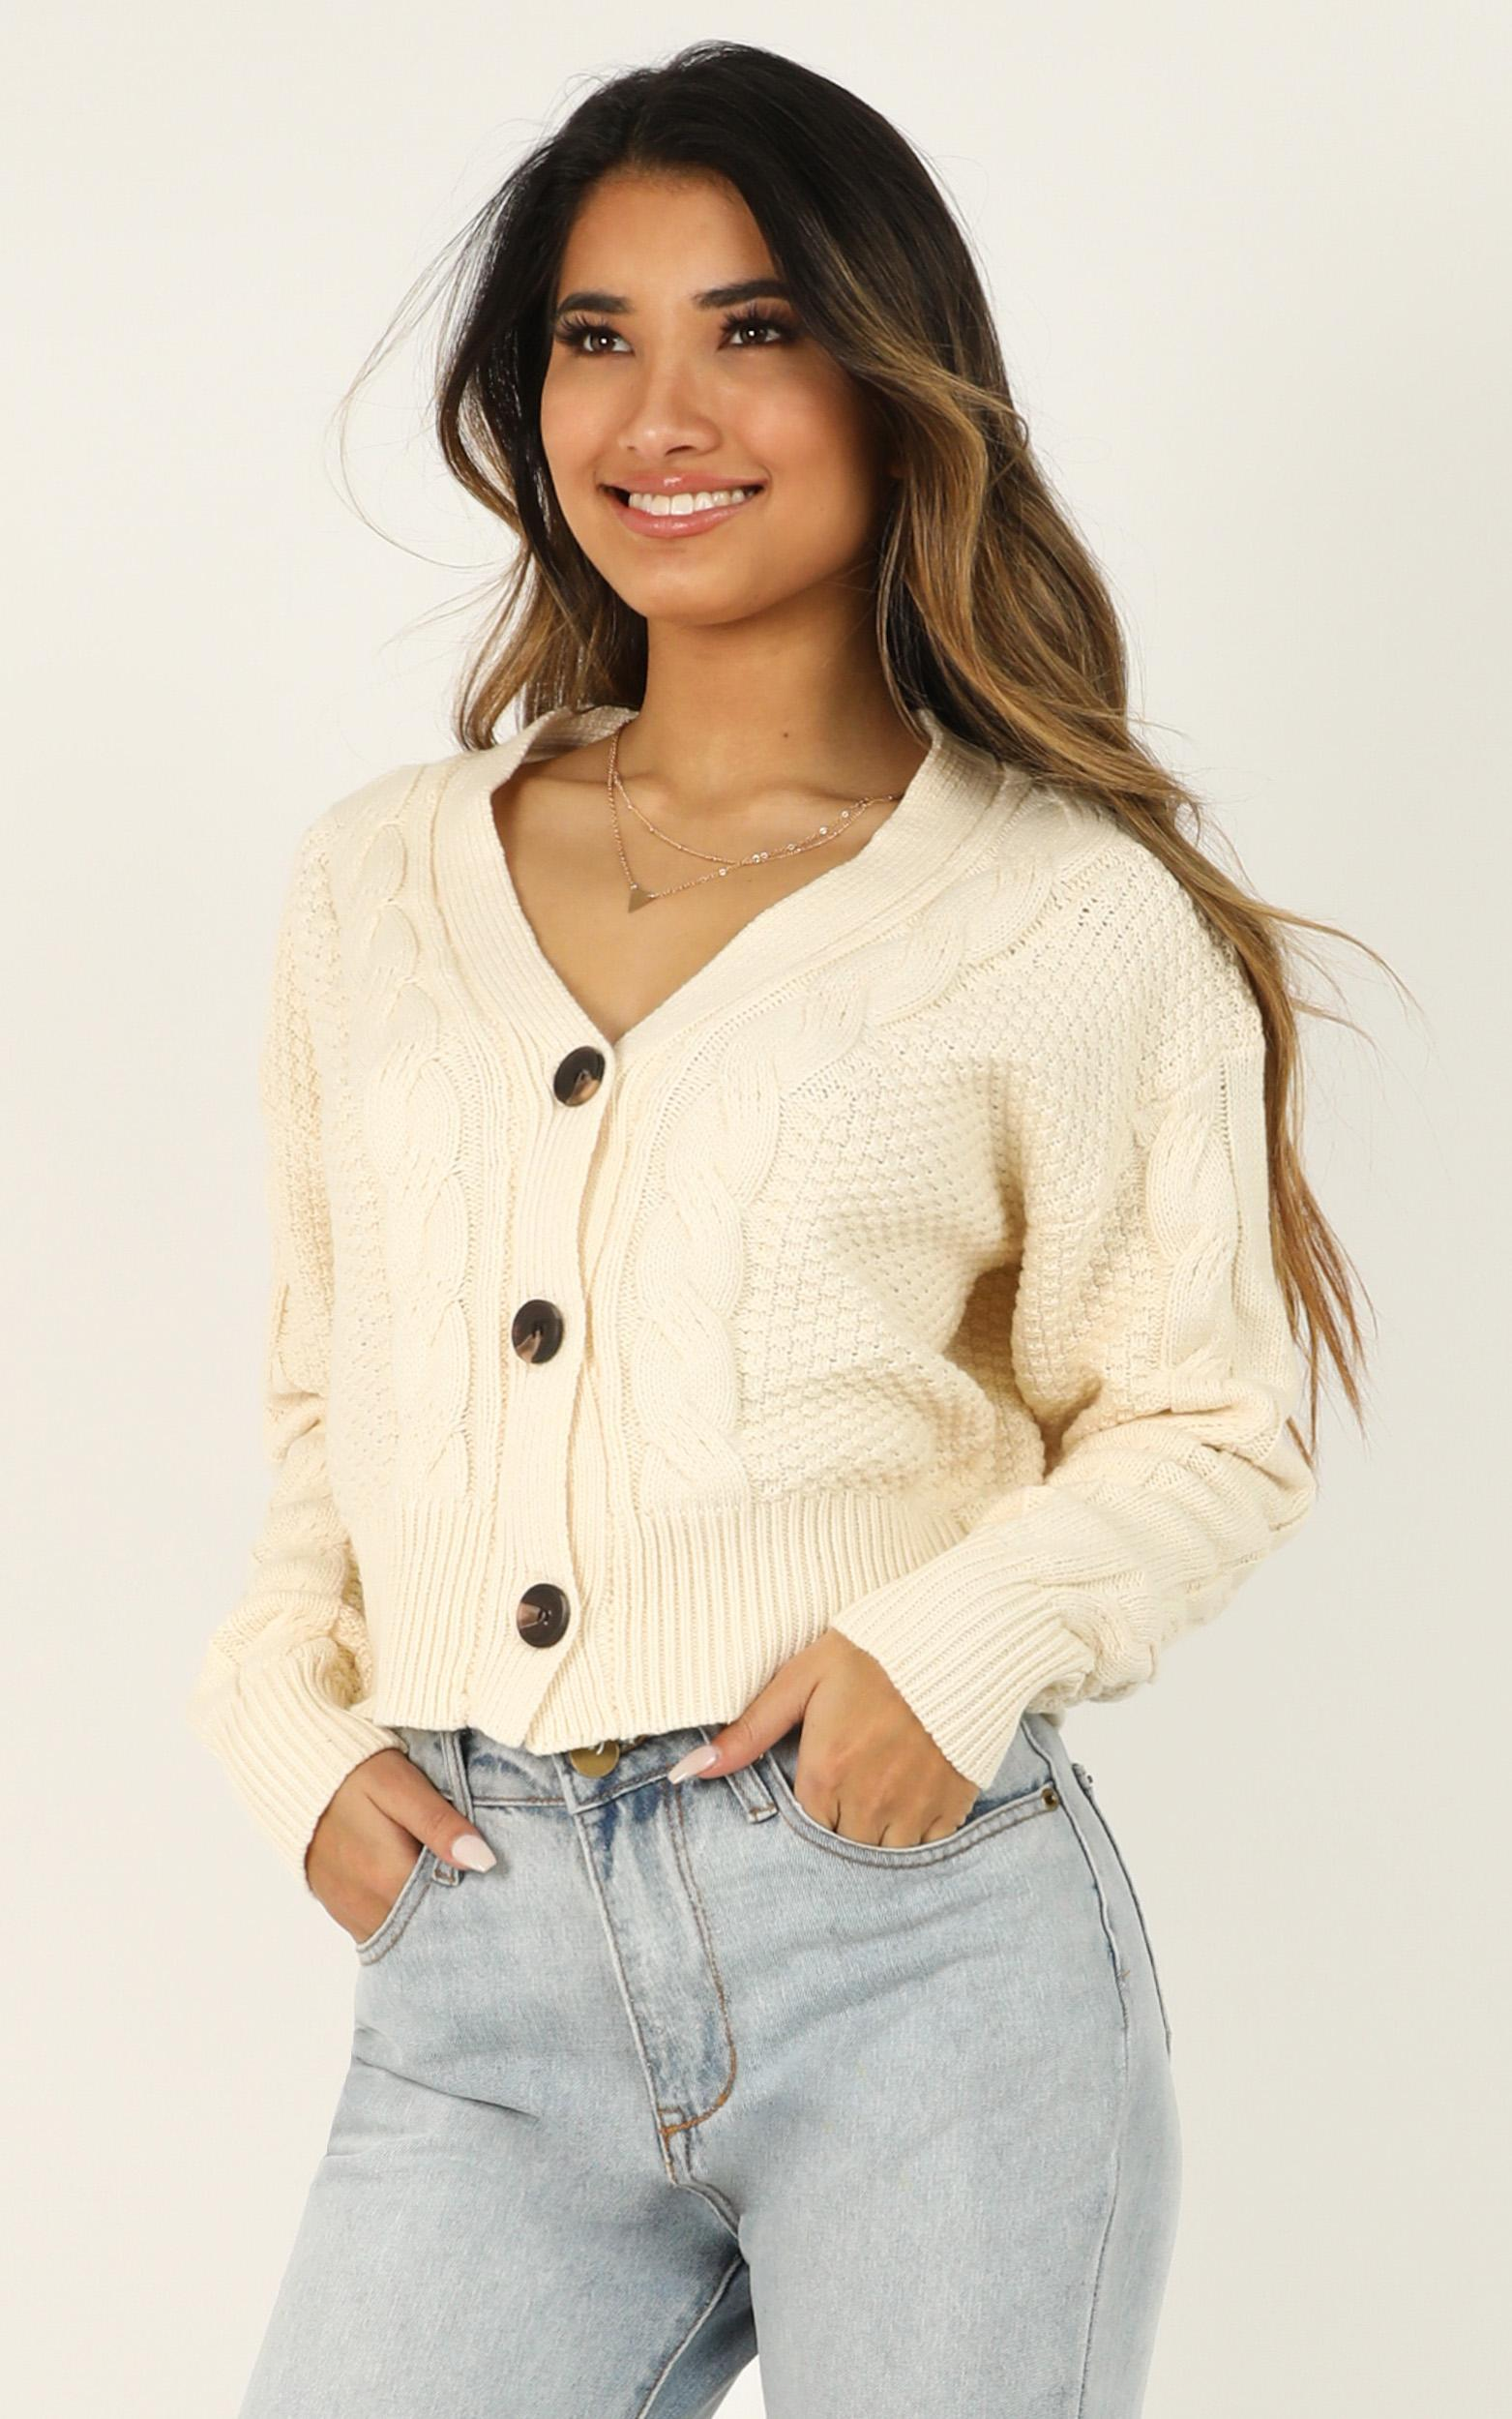 Not Around Knit Cardigan in cream - 12 (L), Cream, hi-res image number null